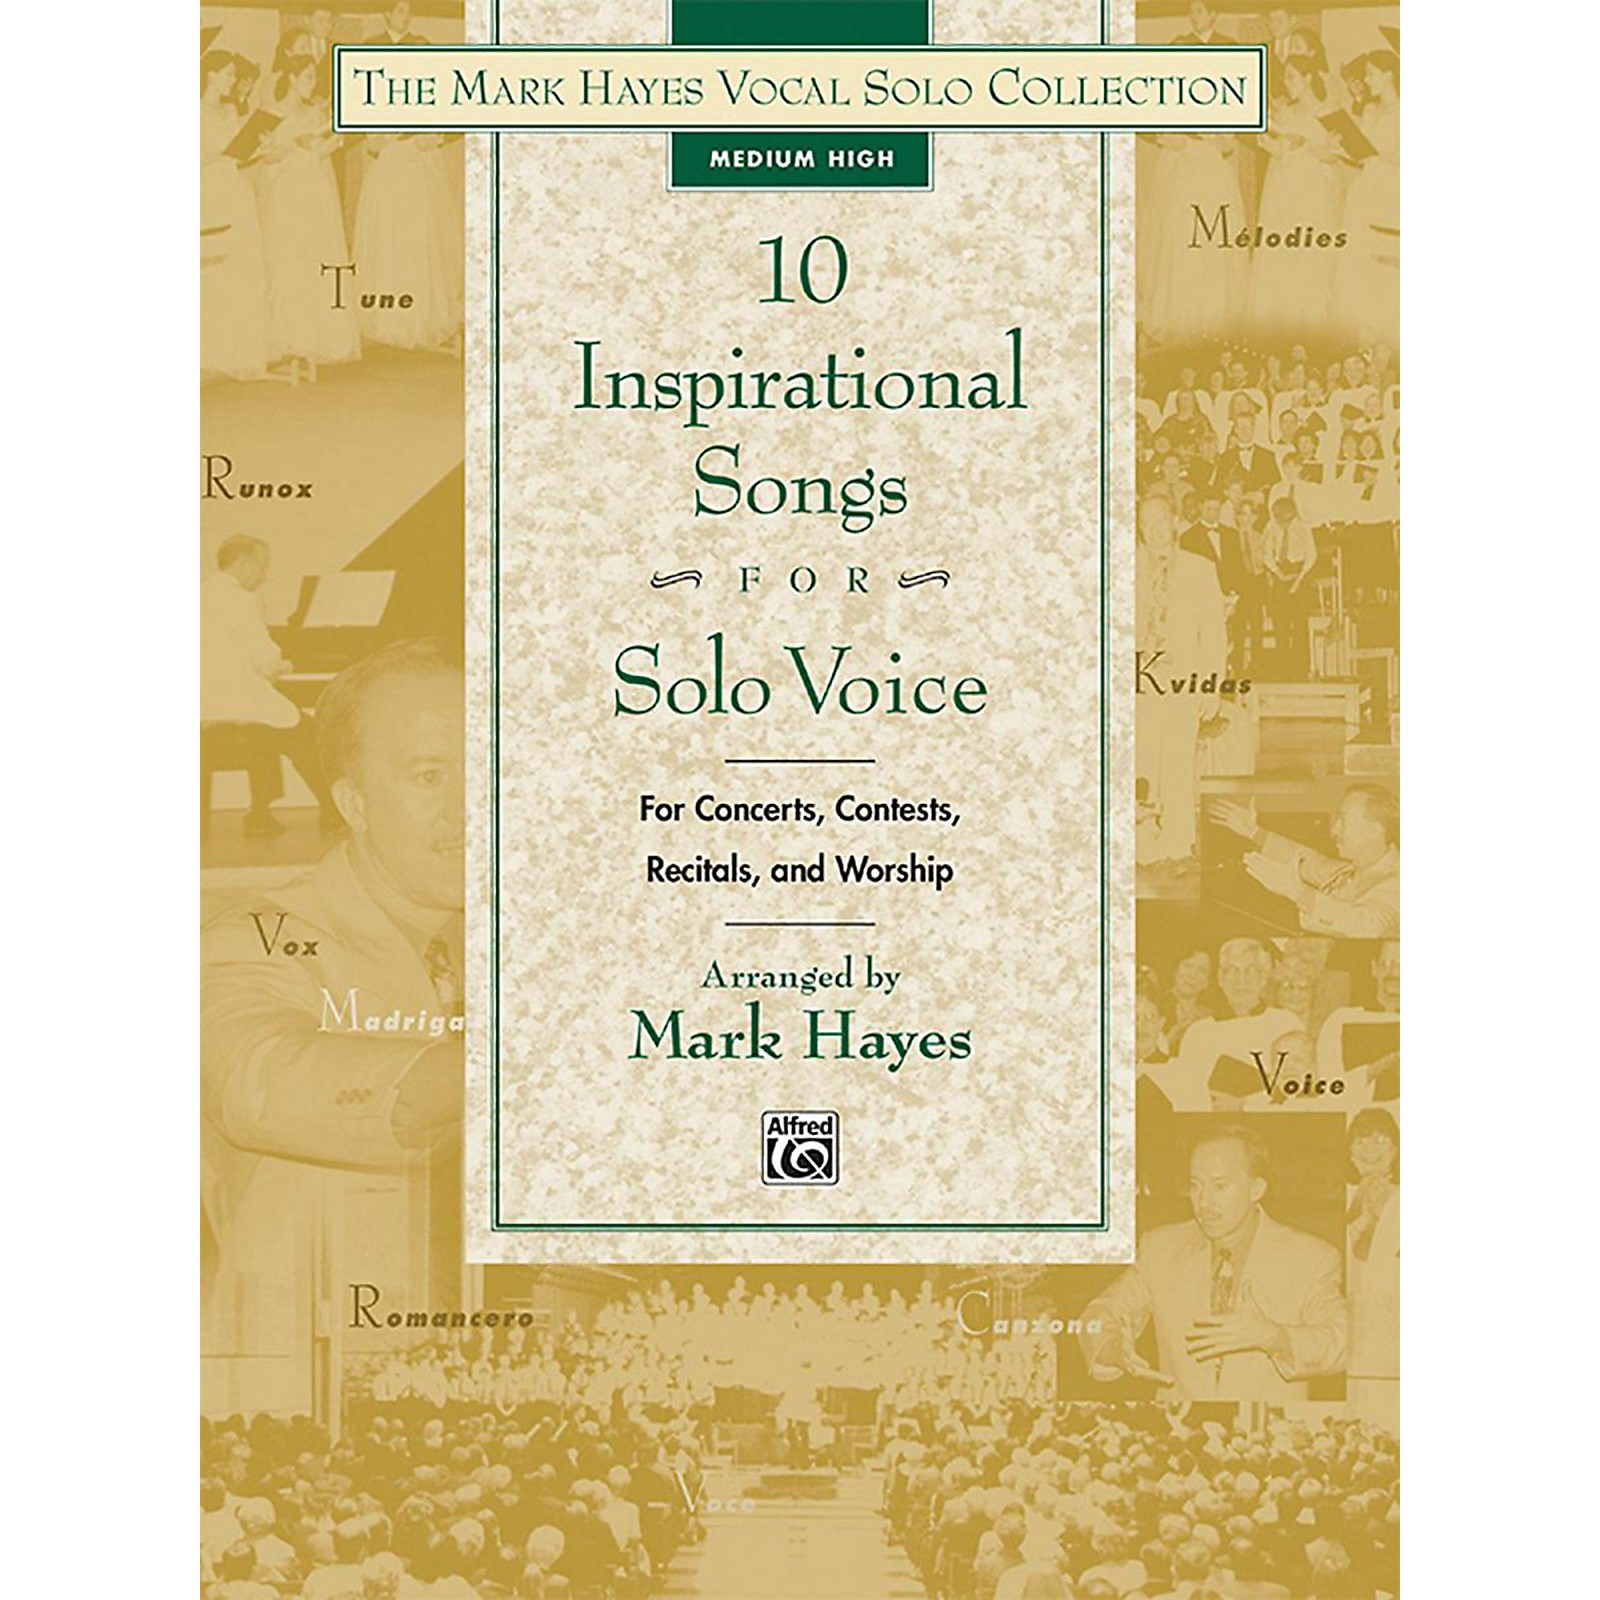 Alfred The Mark Hayes Vocal Solo Collection: 10 Inspirational Songs for Solo Voice Medium High Book